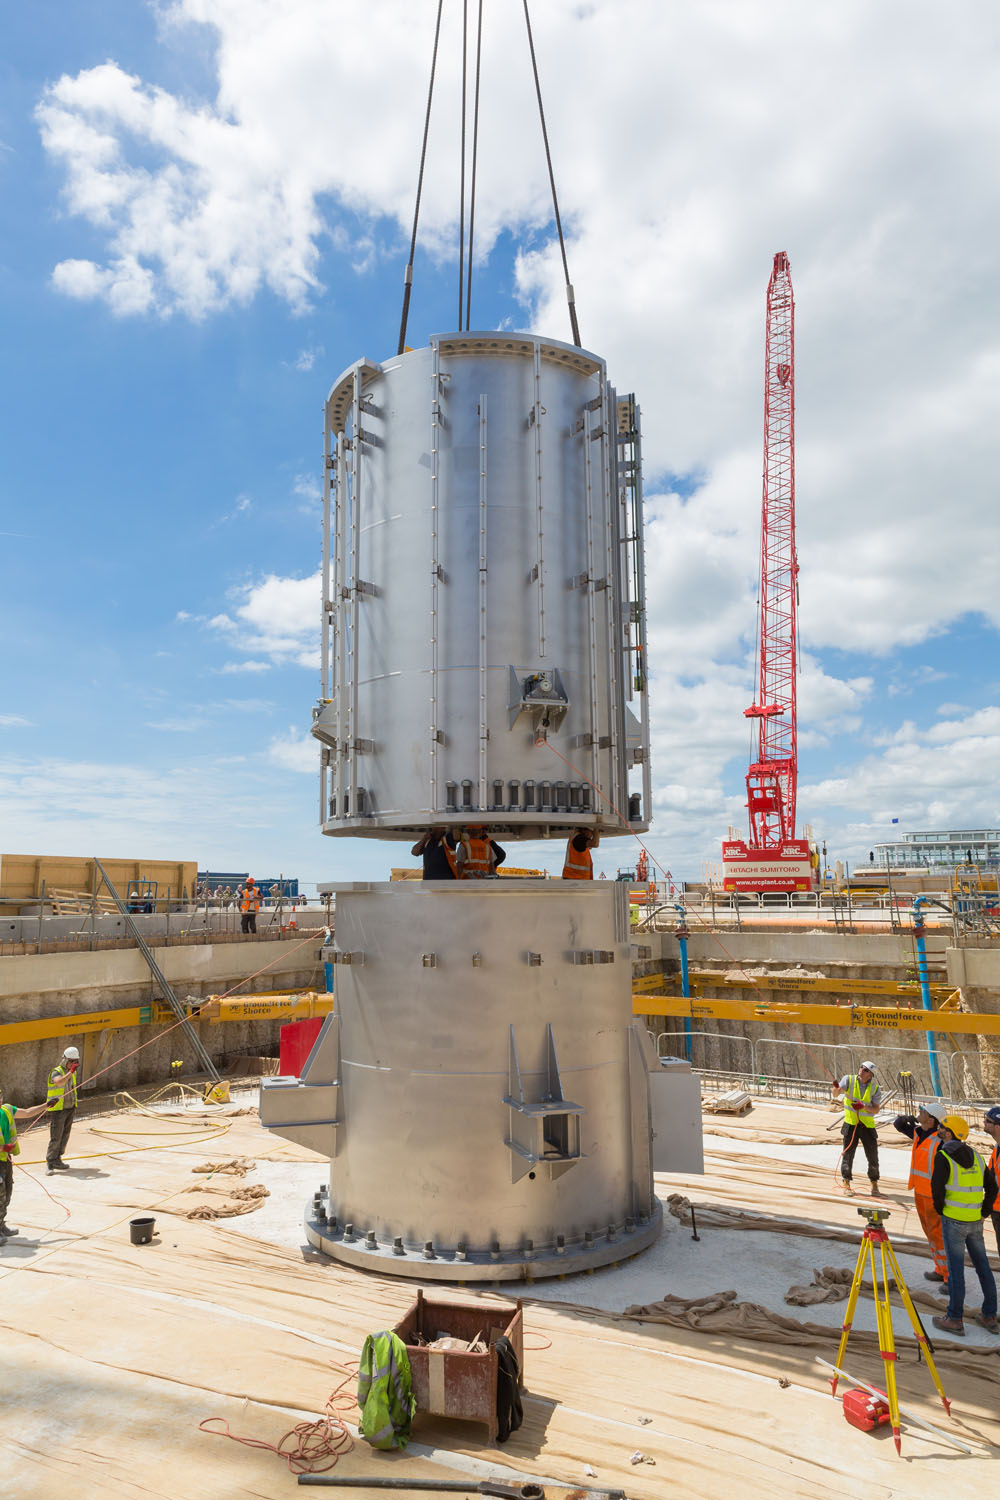 2nd can being moved into place. The 1st and 2nd can went in on the 15th June 2015. The 2nd can was ahead of schedule as it was meant to go in on 16th June.